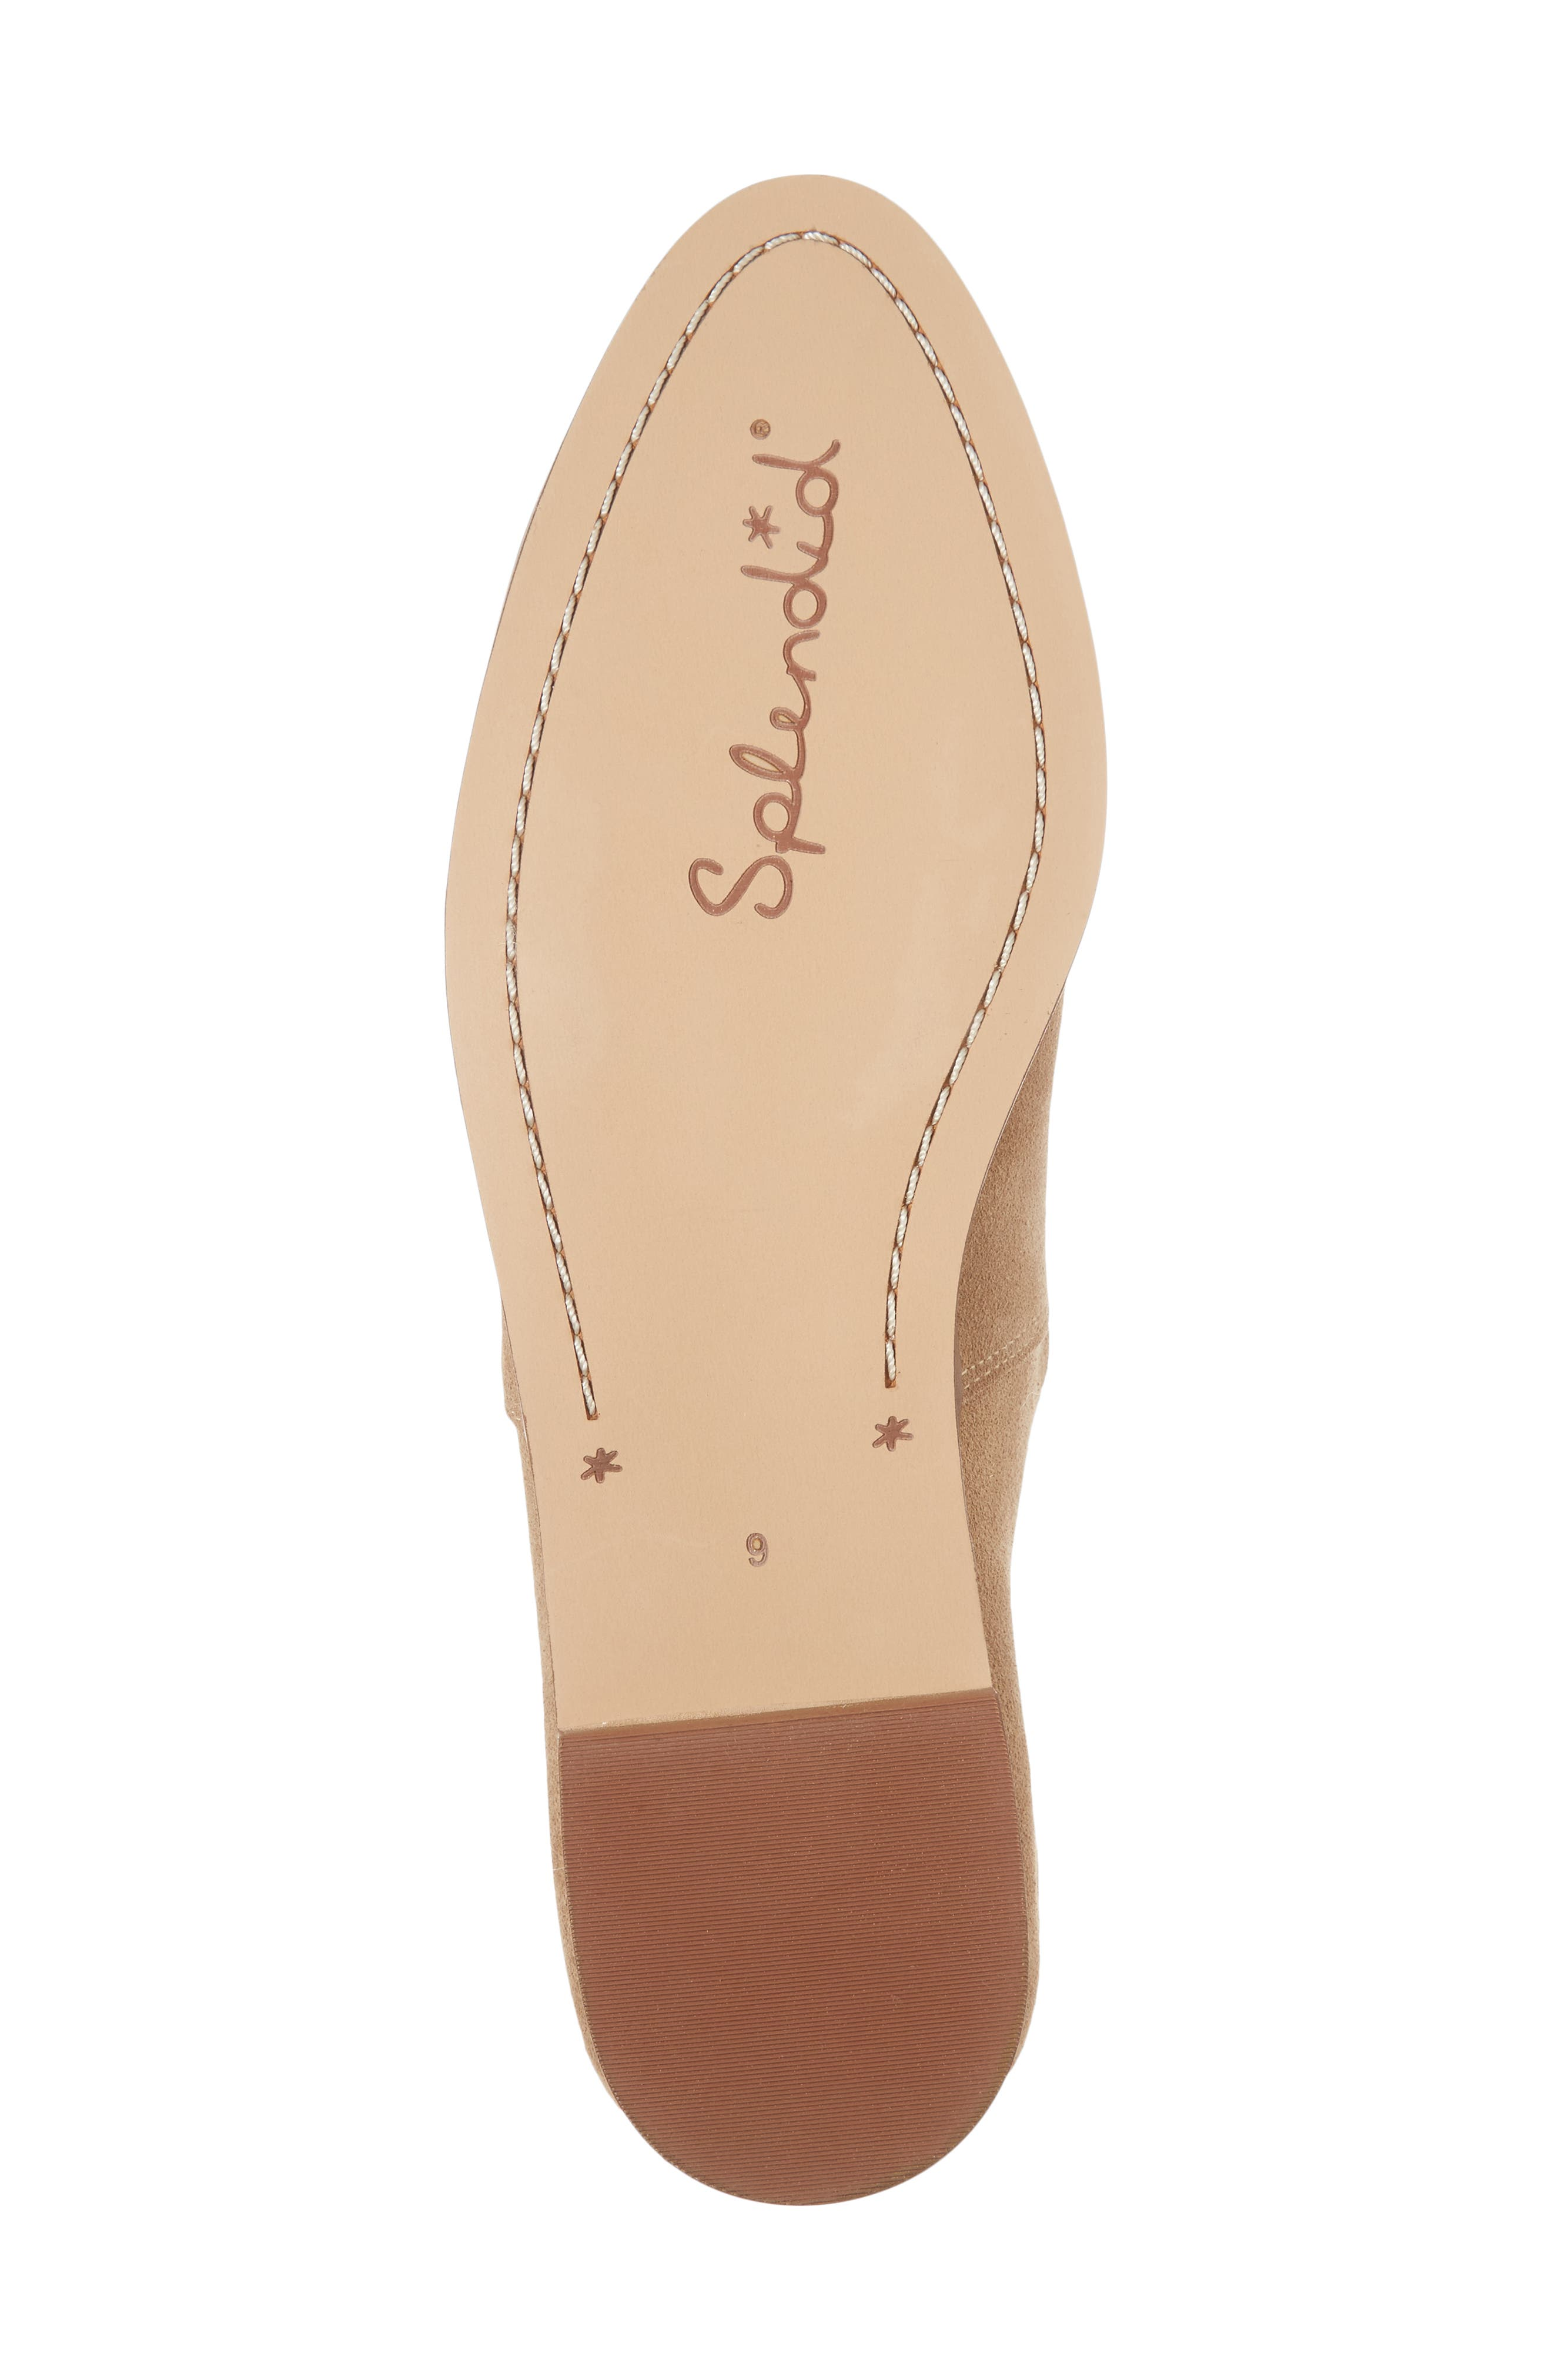 SPLENDID,                             Babette Almond Toe Flat,                             Alternate thumbnail 6, color,                             252